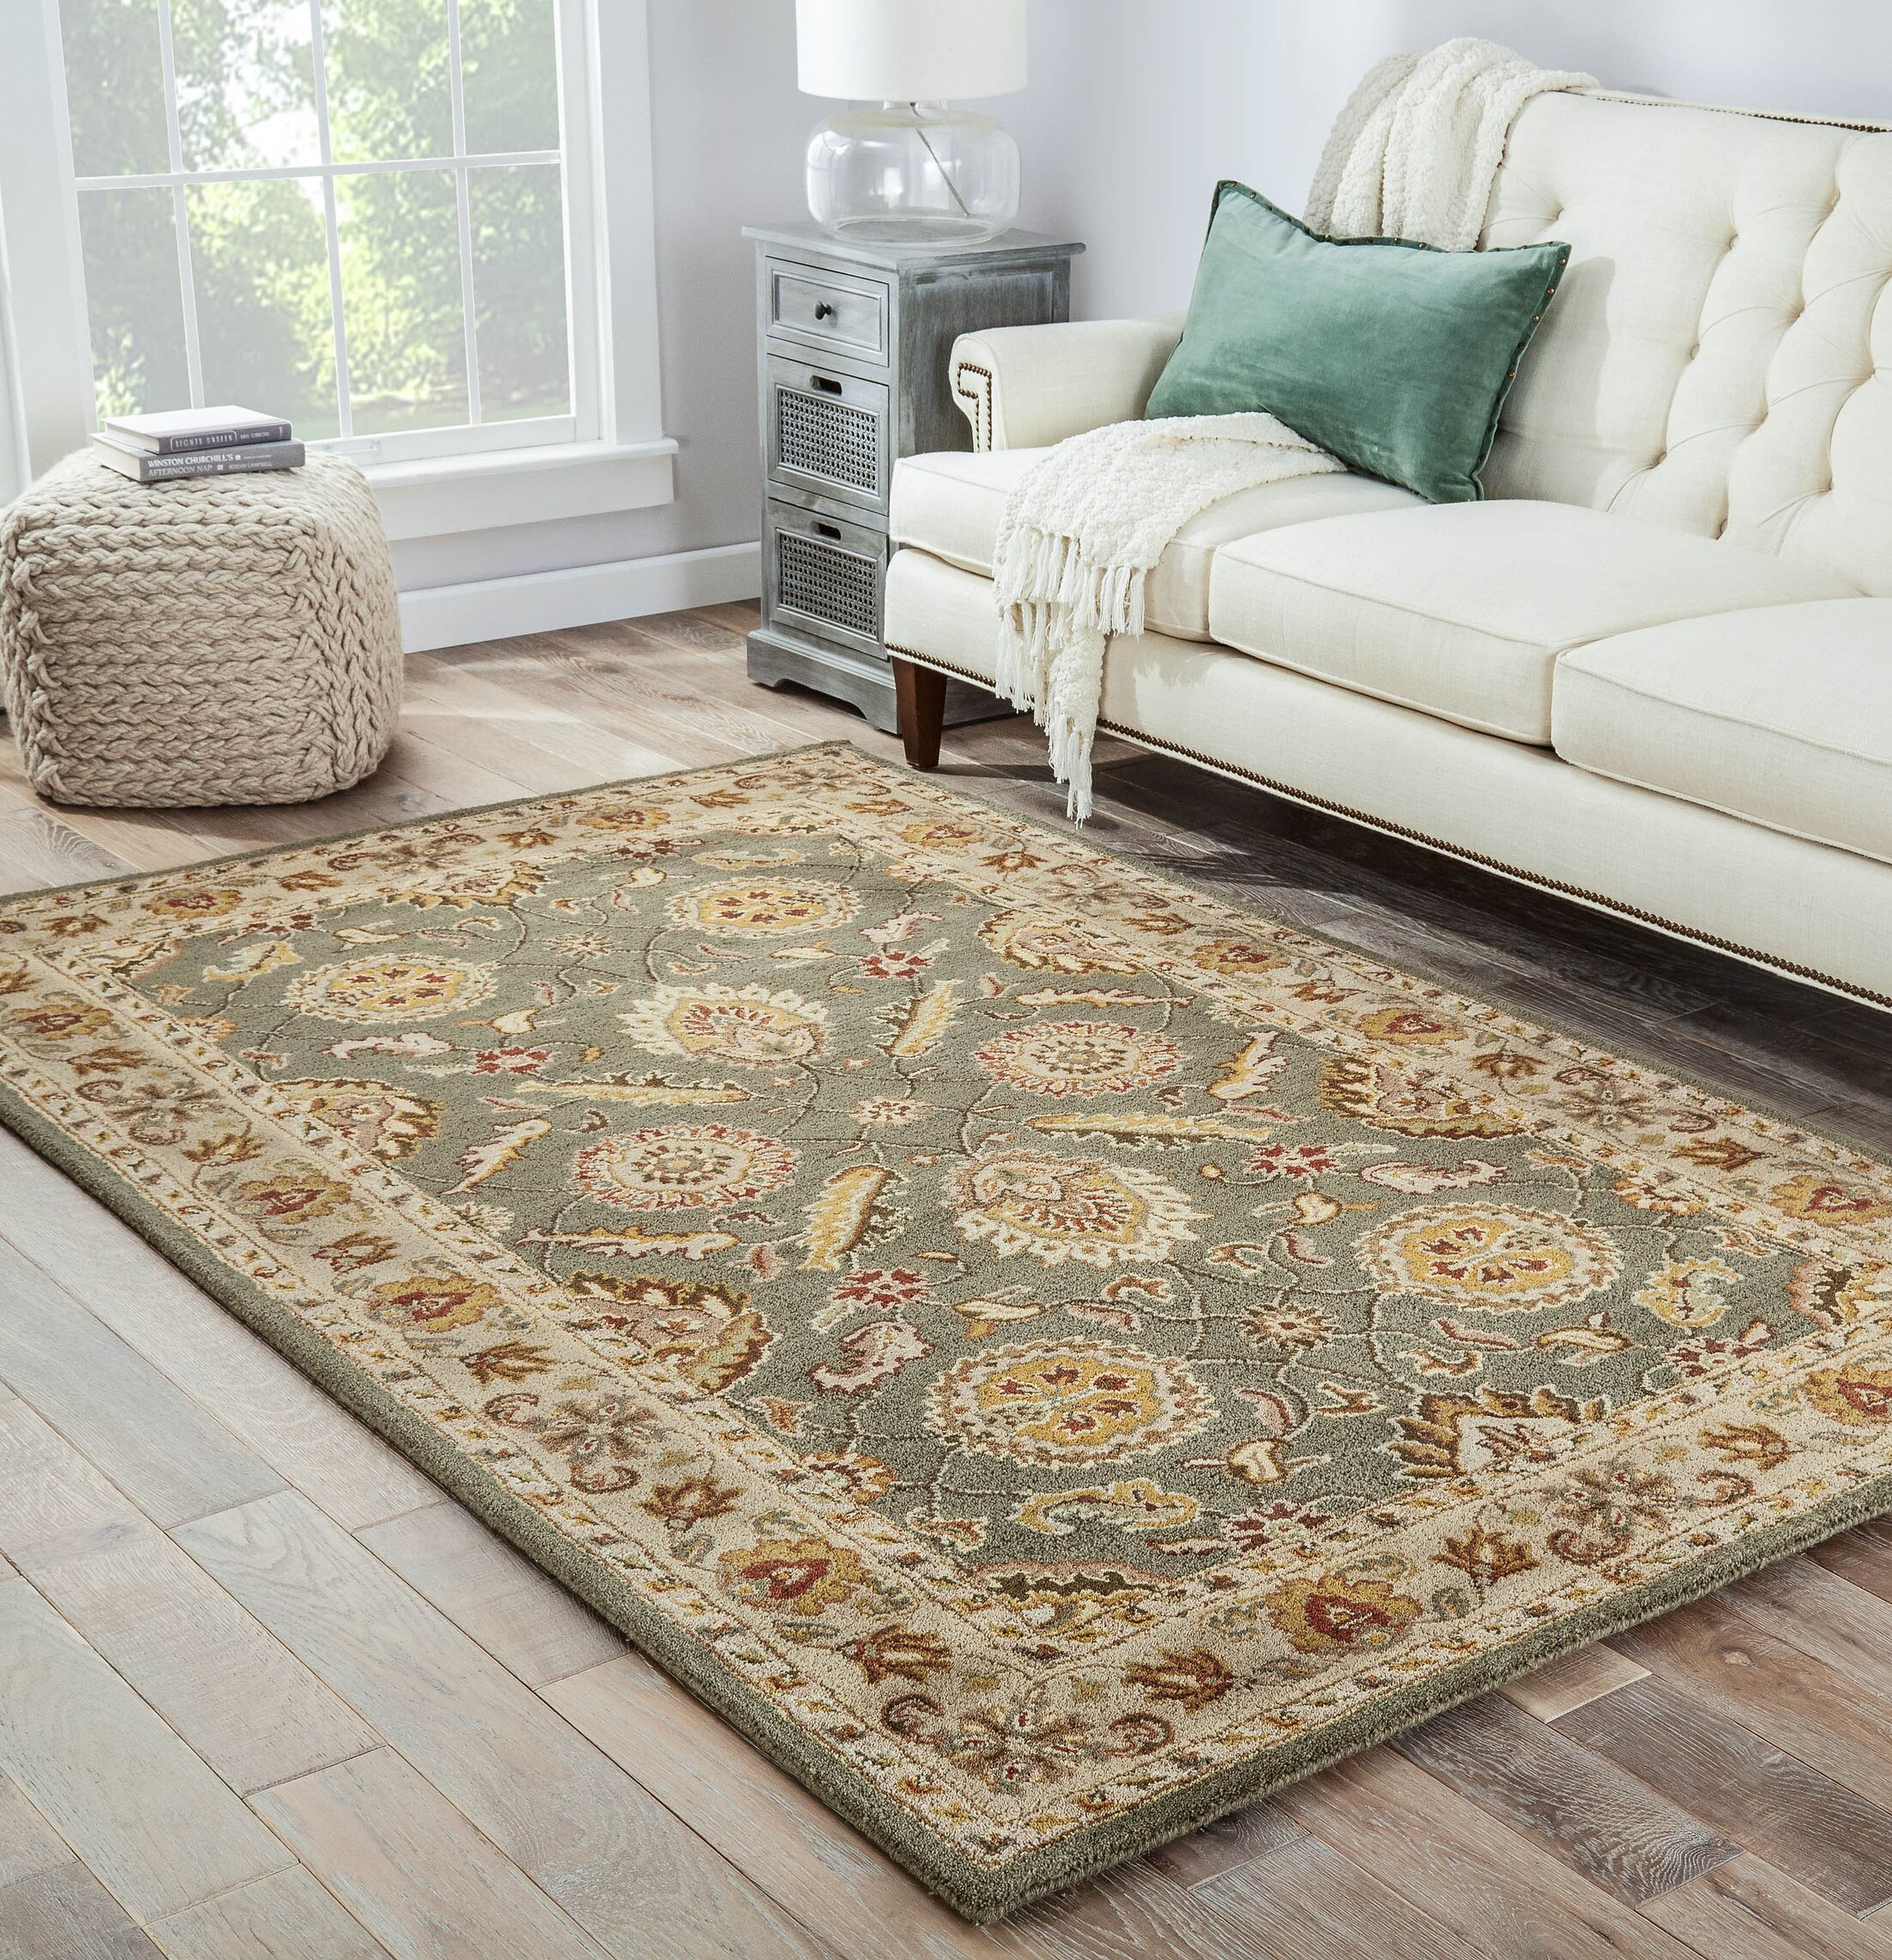 Sanson Tufted Wool Rug Rug Size: Rectangle 4' x 8'